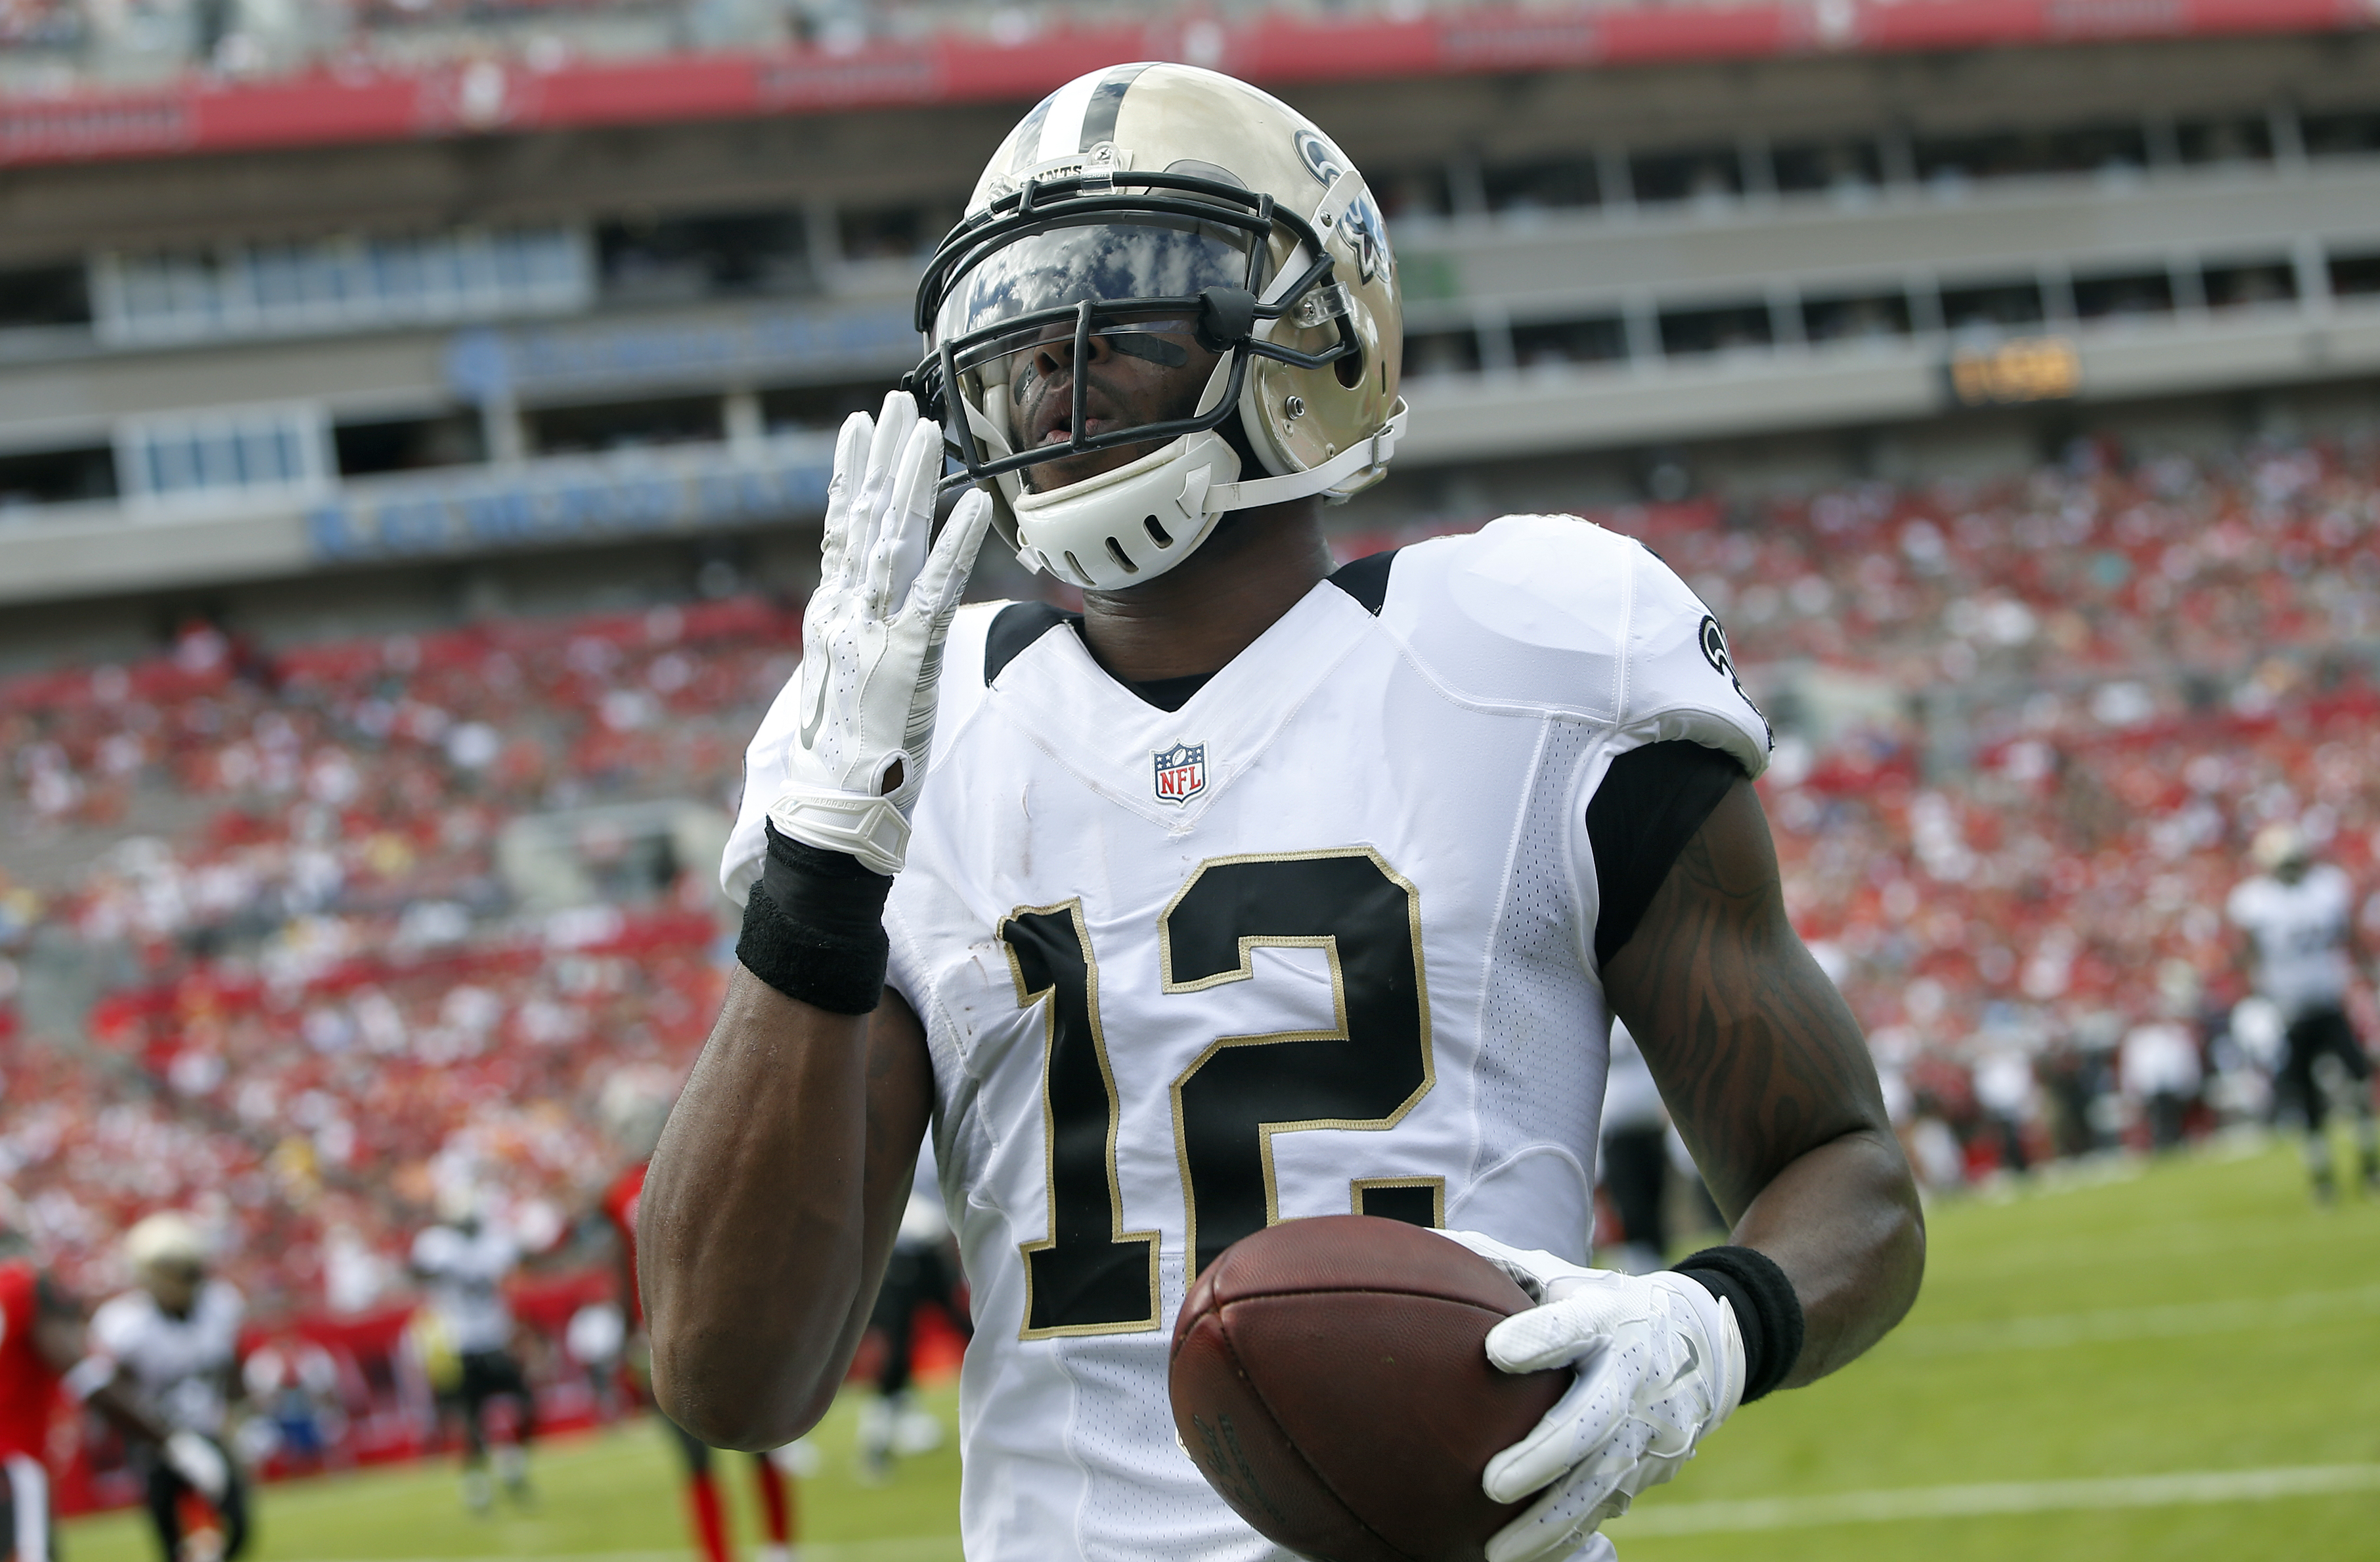 New Orleans Saints wide receiver Marques Colston (12) celebrates after his 1-yard touchdown reception during the second quarter of an NFL football game against the Tampa Bay Buccaneers Sunday, Dec. 13, 2015, in Tampa, Fla. (AP Photo/Brian Blanco)